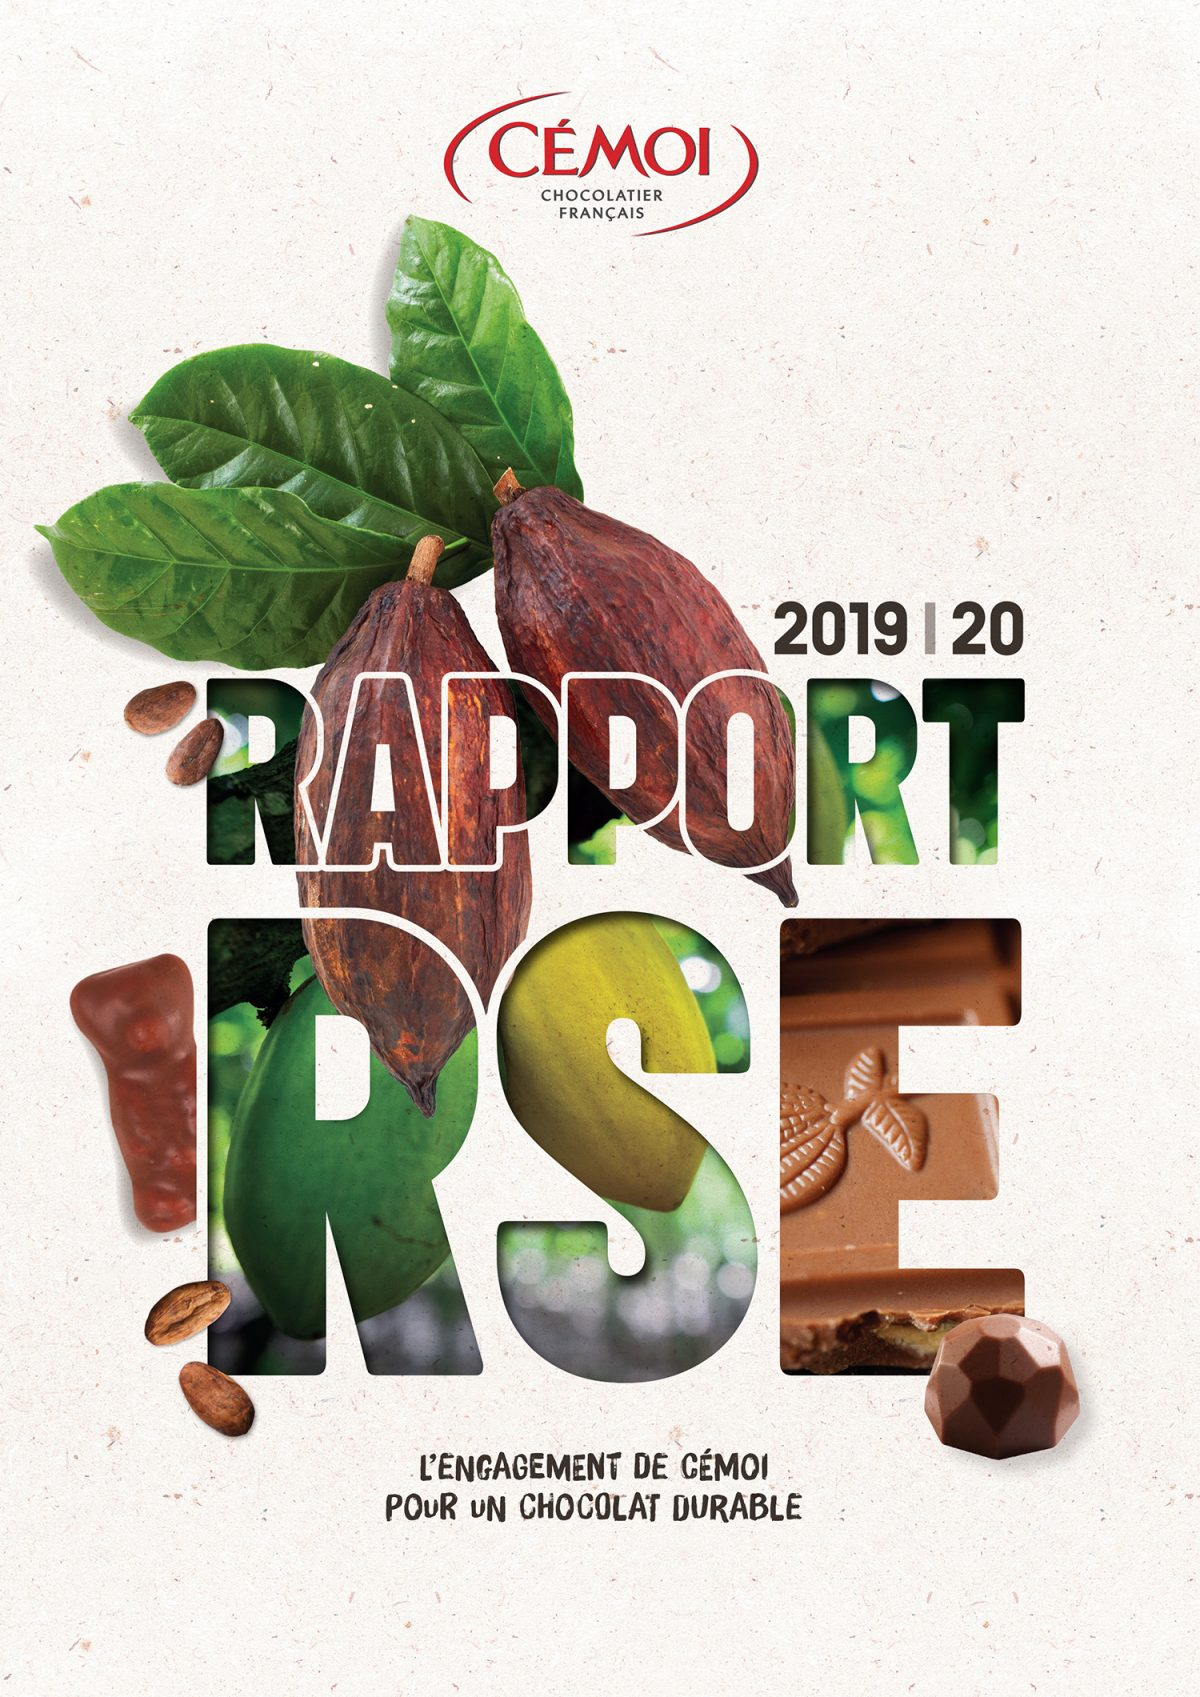 RAPPORT RSE  2019-2020  GROUPE CEMOI